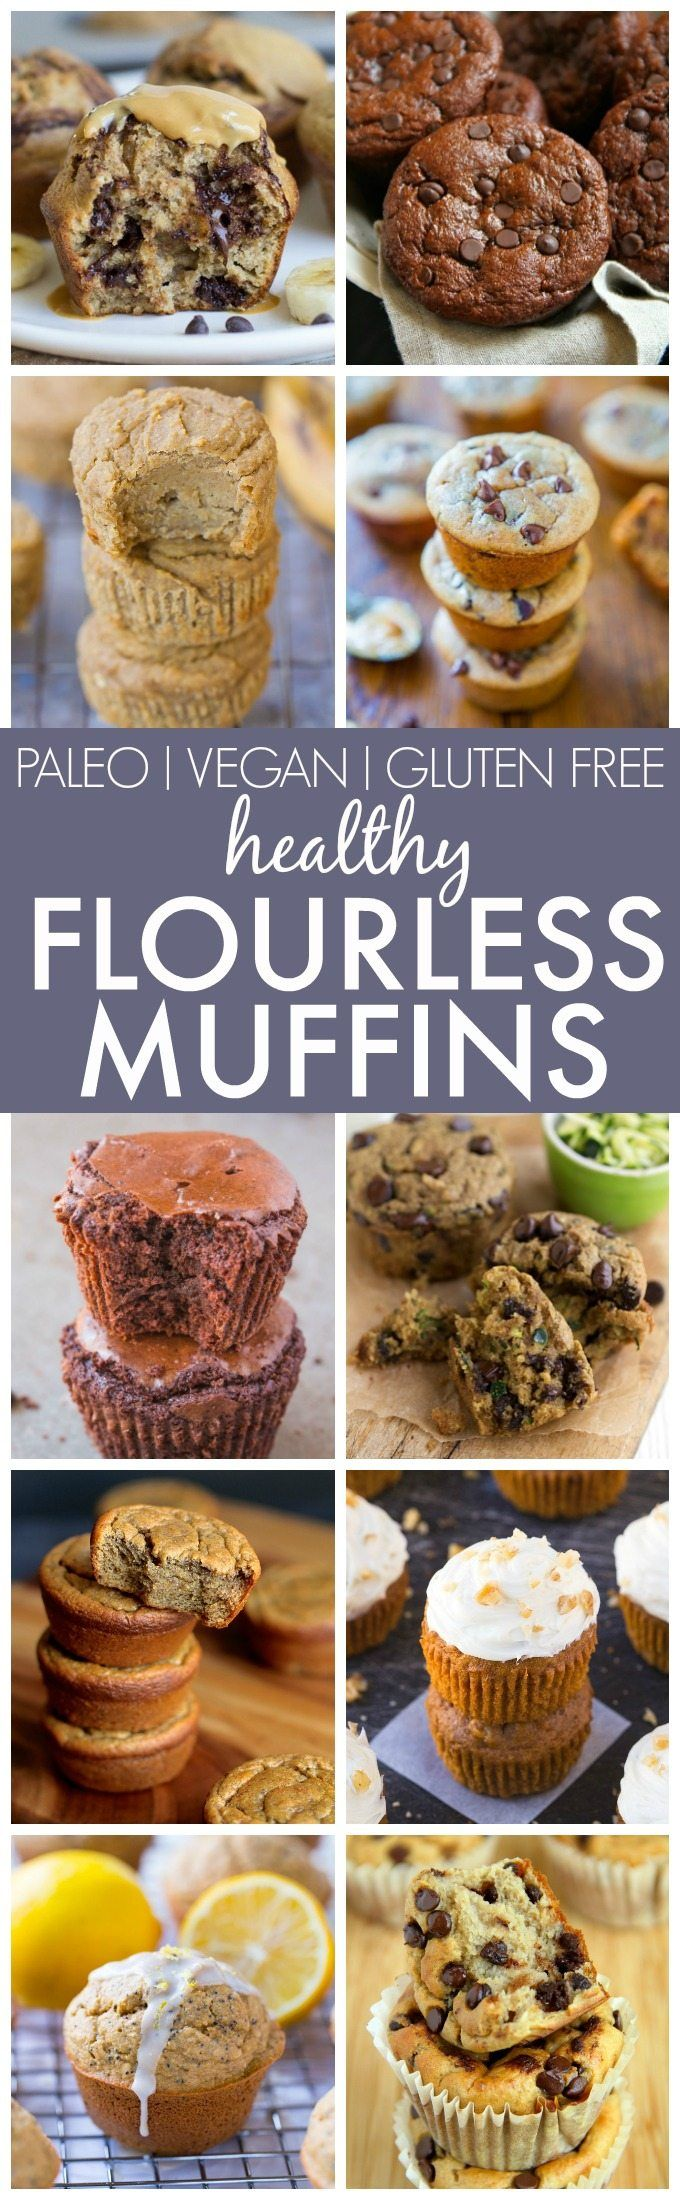 The best clean-eating muffins made with ZERO flour, butter, oil or refined sugar yet fluffy and delicious! Loads of diet options and perfect for breakfast and snacks!